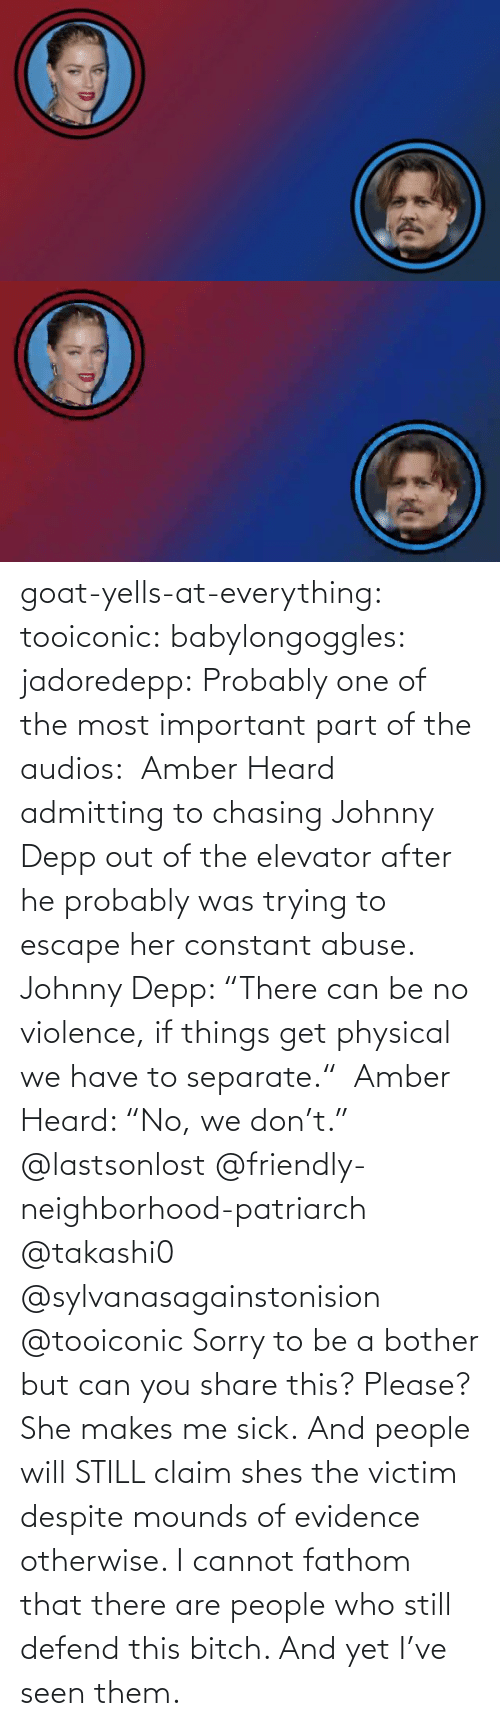 "The Most Important: goat-yells-at-everything:  tooiconic:  babylongoggles:  jadoredepp:  Probably one of the most important part of the audios:  Amber Heard admitting to chasing Johnny Depp out of the elevator after he probably was trying to escape her constant abuse.  Johnny Depp: ""There can be no violence, if things get physical we have to separate.""  Amber Heard: ""No, we don't.""  @lastsonlost @friendly-neighborhood-patriarch @takashi0 @sylvanasagainstonision @tooiconic Sorry to be a bother but can you share this? Please?   She makes me sick.   And people will STILL claim shes the victim despite mounds of evidence otherwise.    I cannot fathom that there are people who still defend this bitch. And yet I've seen them."